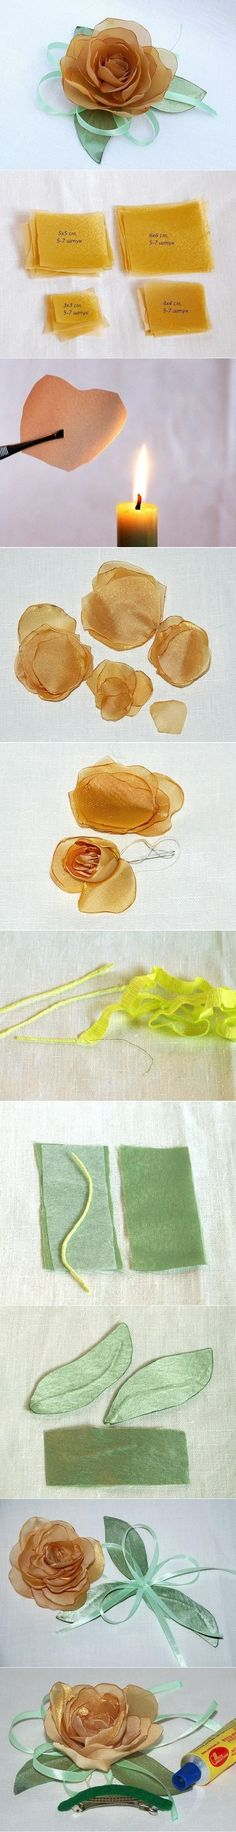 DIY Pretty Hairpin Rose